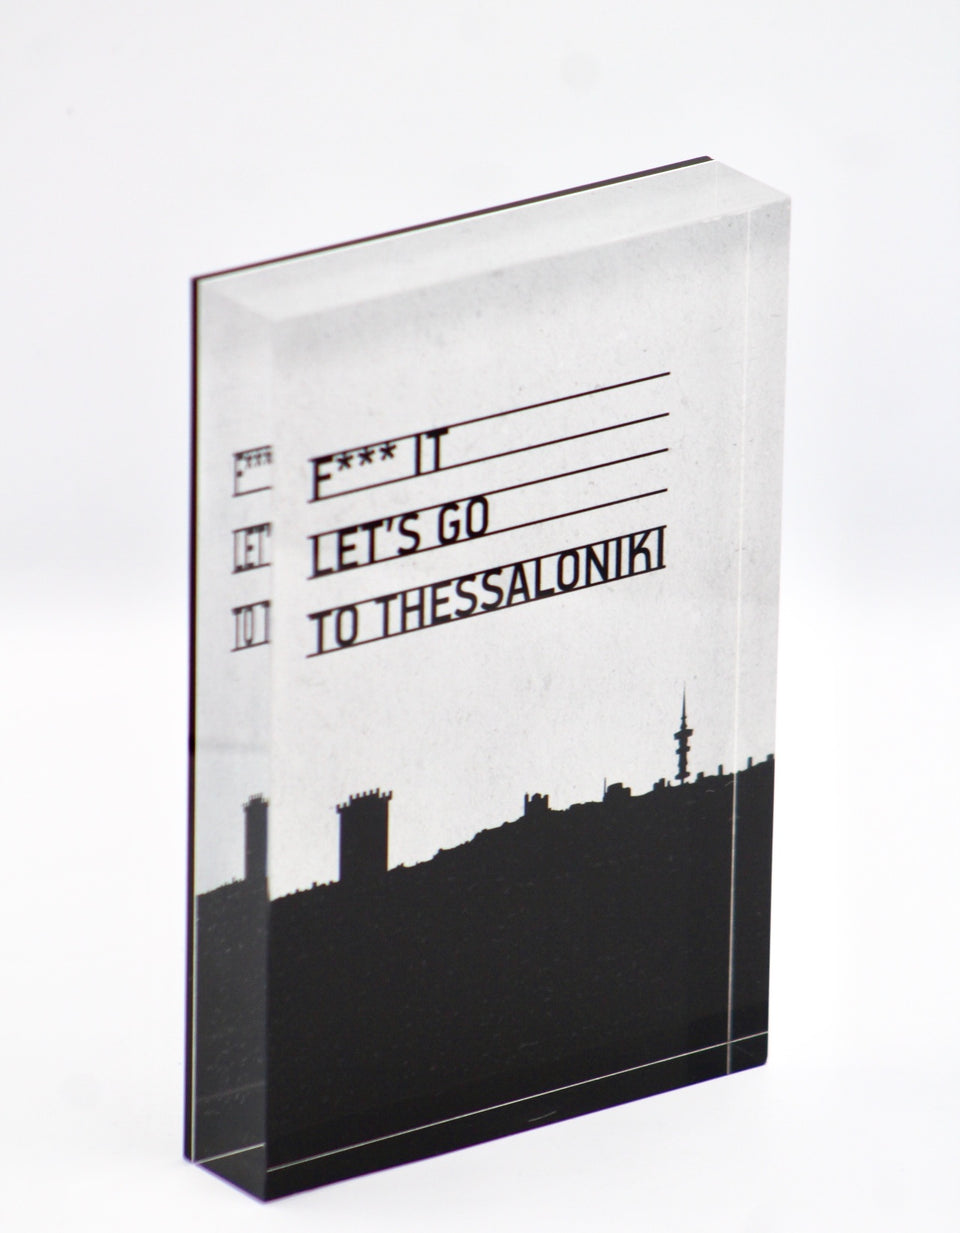 Let's go to Thessaloniki design object